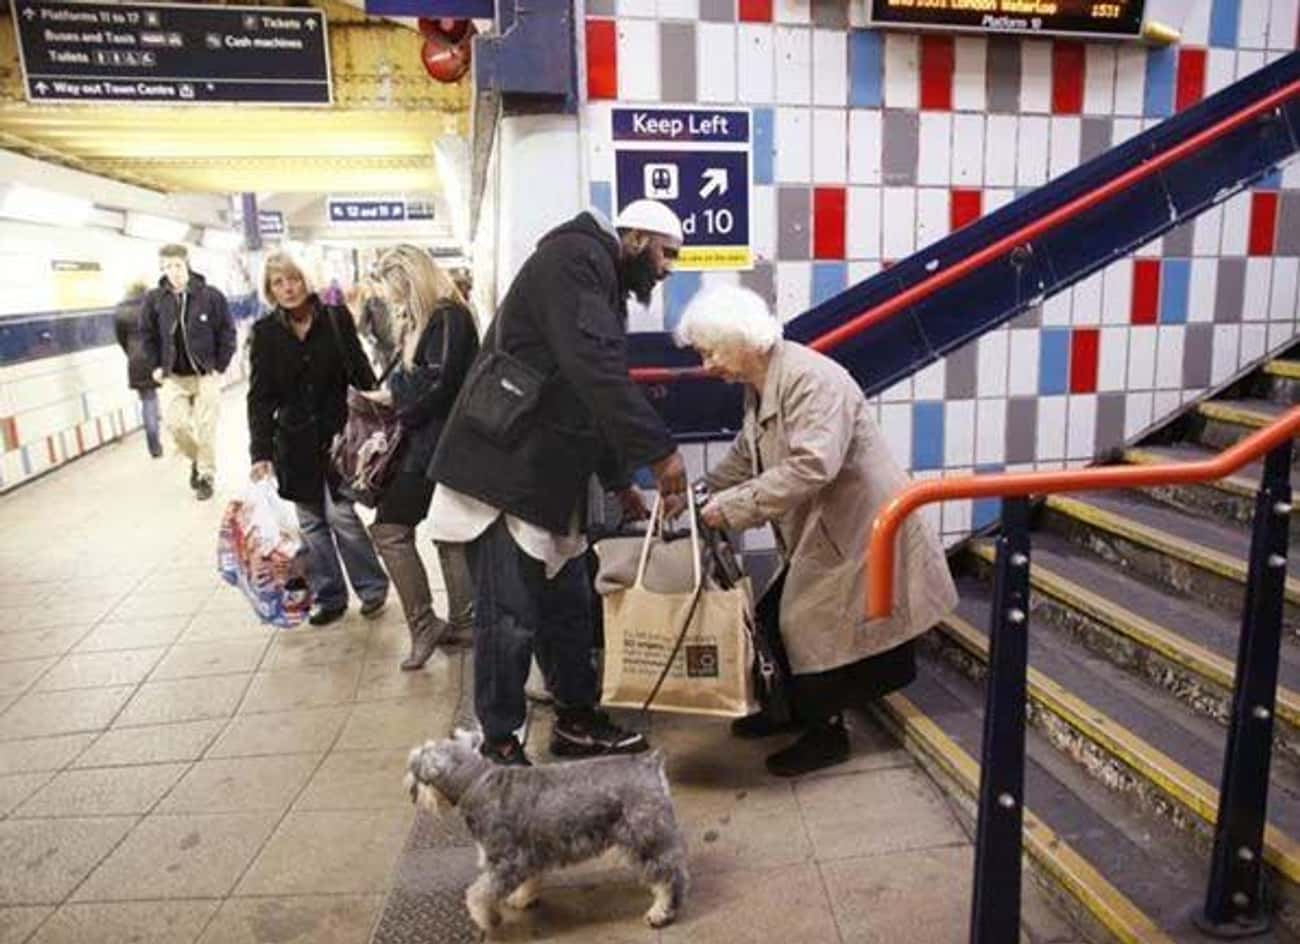 Stairway To Heaven is listed (or ranked) 2 on the list 14 Heartwarming Random Acts of Kindness Caught on Camera